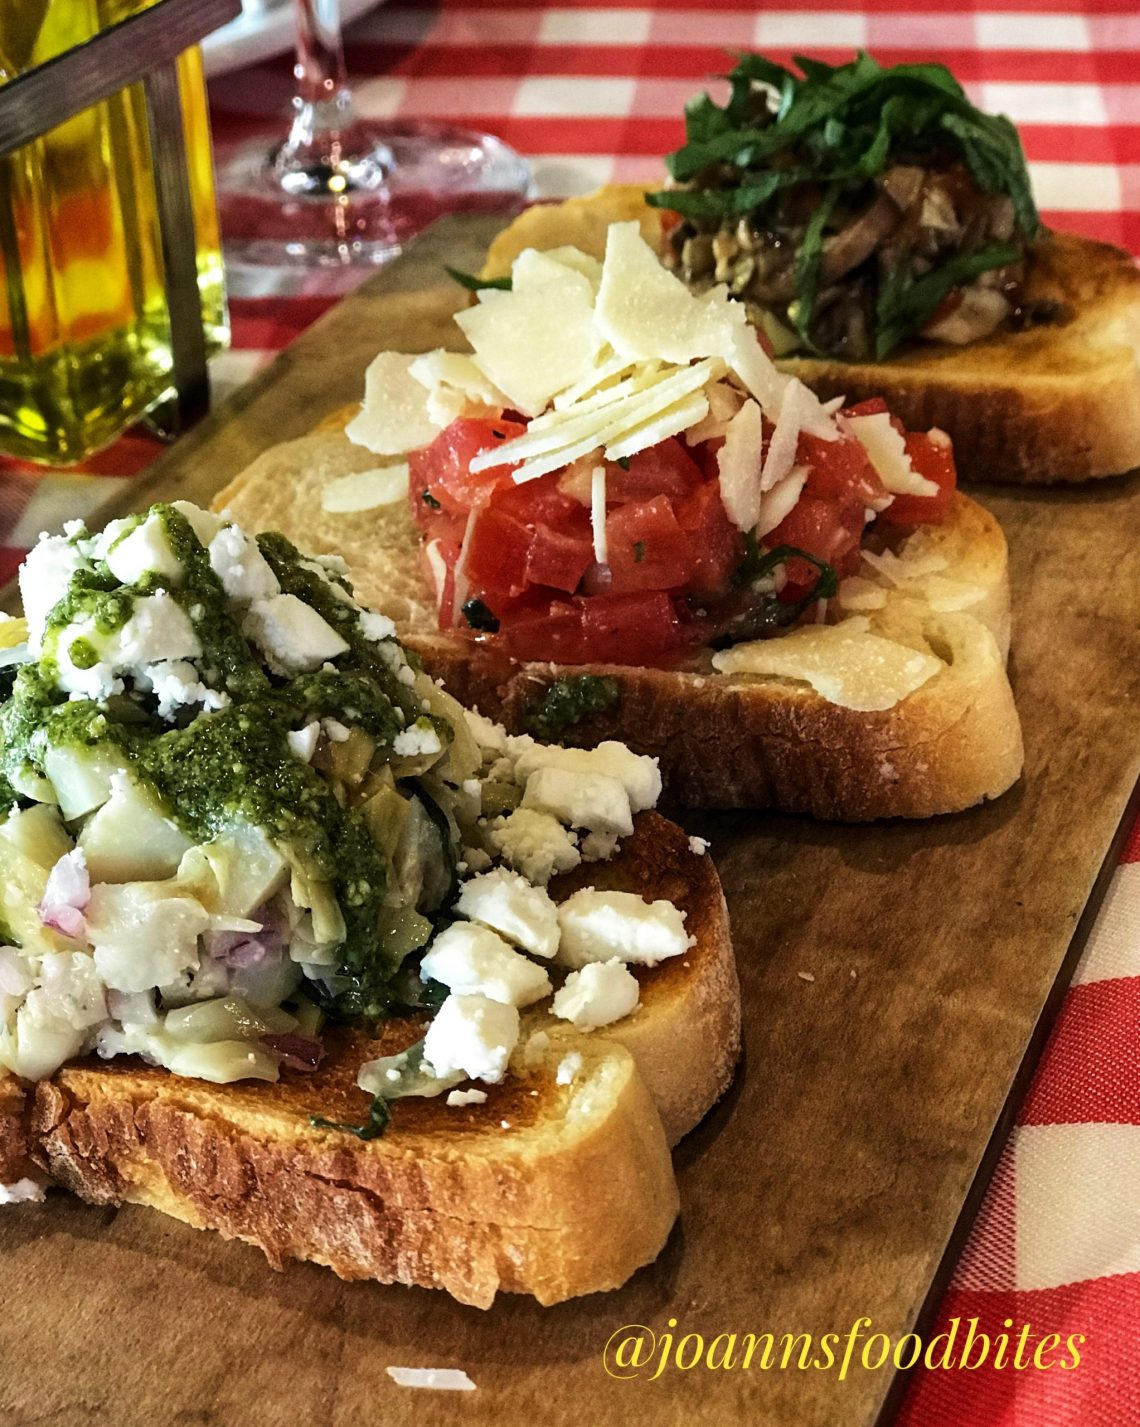 Grimaldi's Extra Large Bruchetta is a meal itself